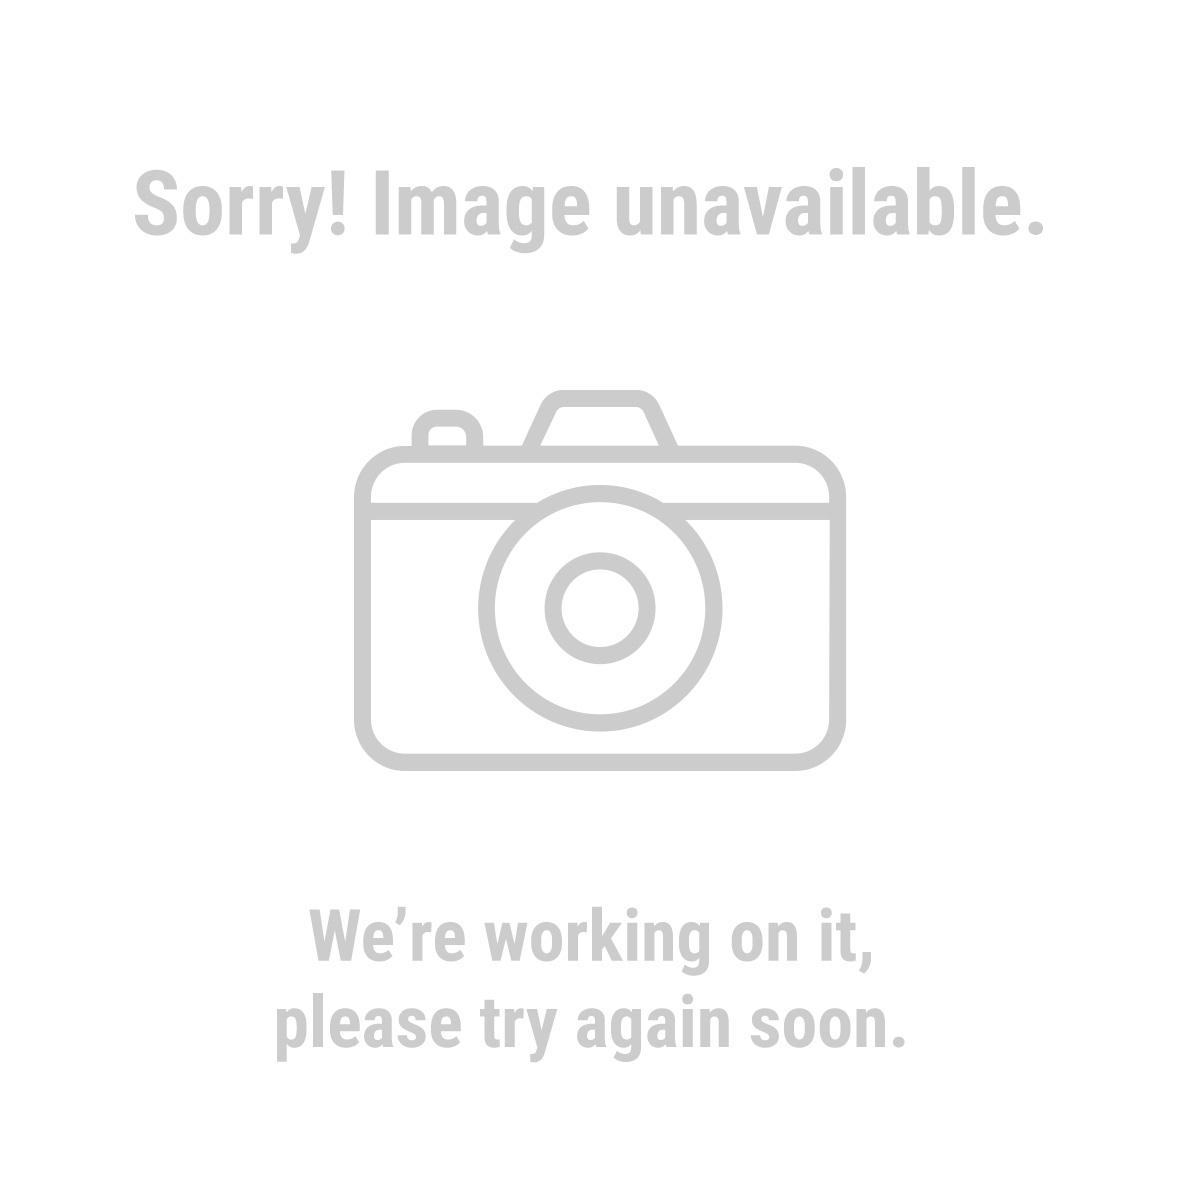 Haul-Master 96479 Solid Rubber Wheel Chock